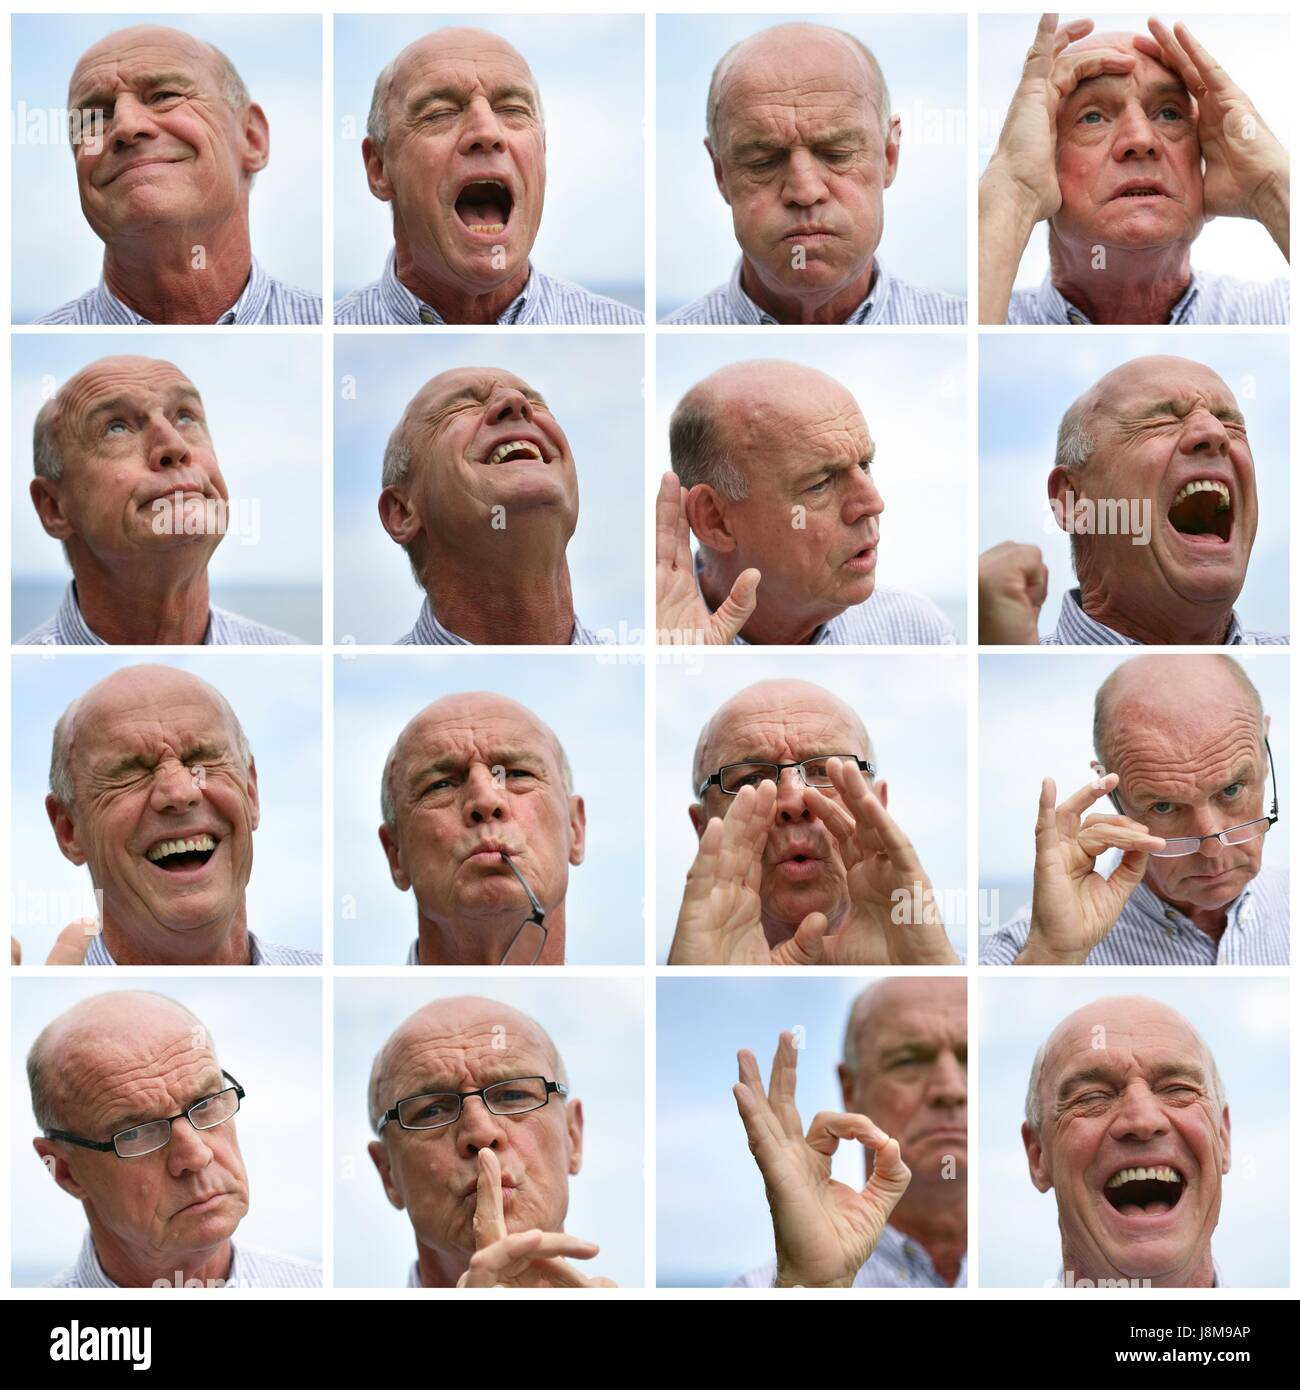 gesture, laugh, laughs, laughing, twit, giggle, smile, smiling, laughter, - Stock Image